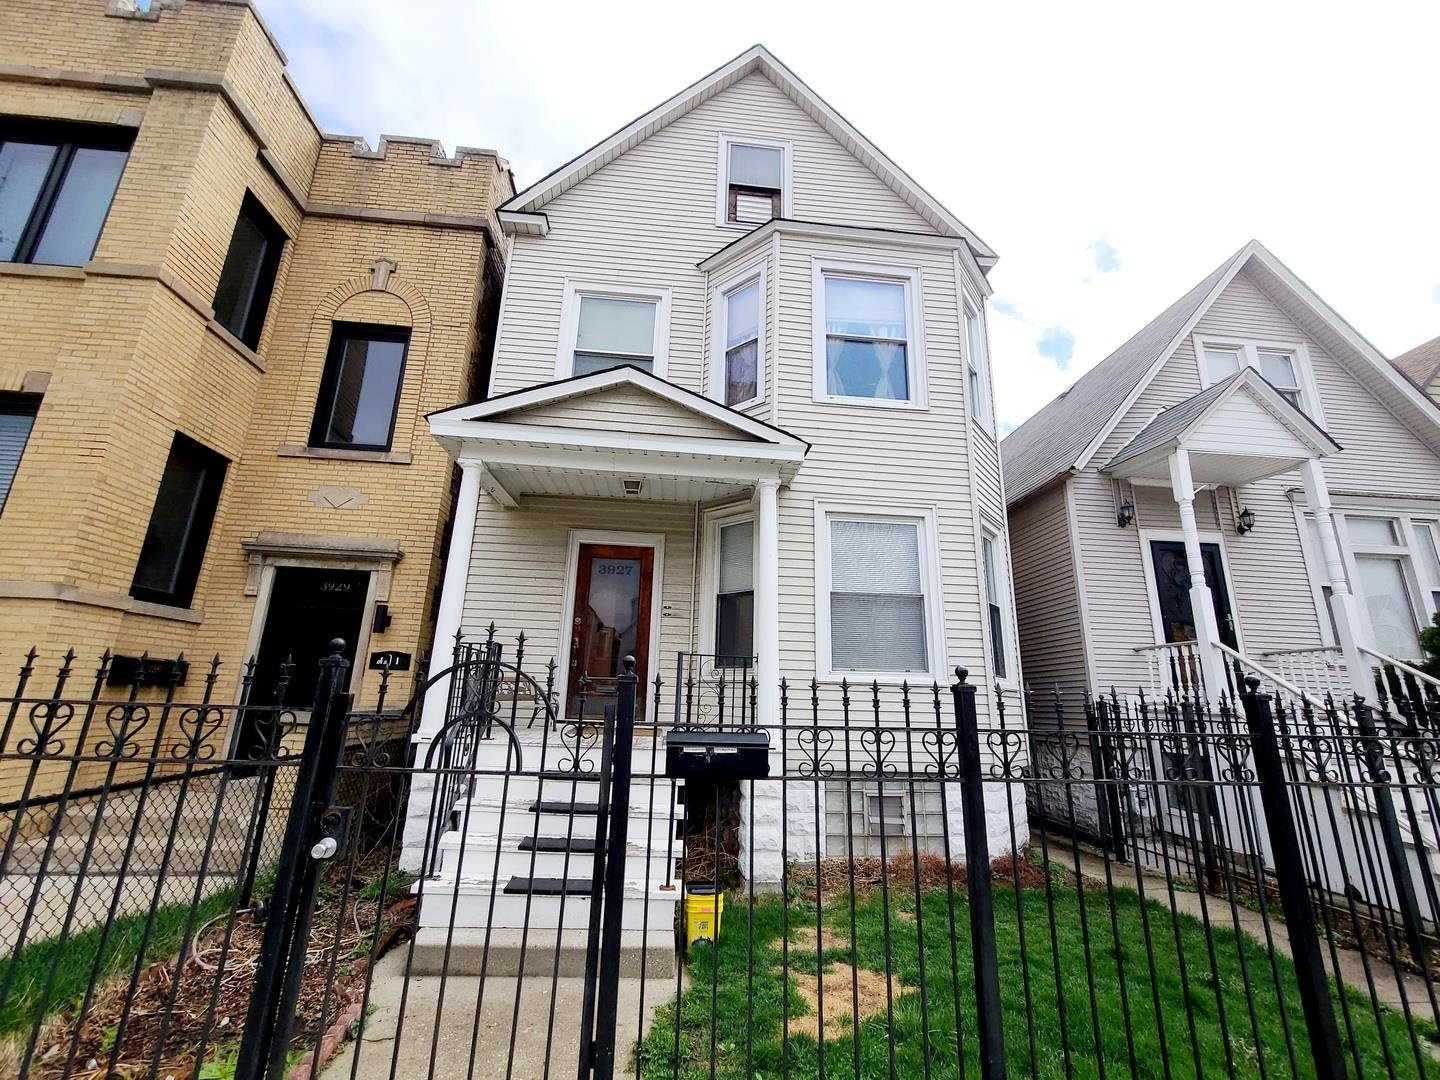 3927 N Whipple Street, Chicago, IL 60618 - #: 11064149